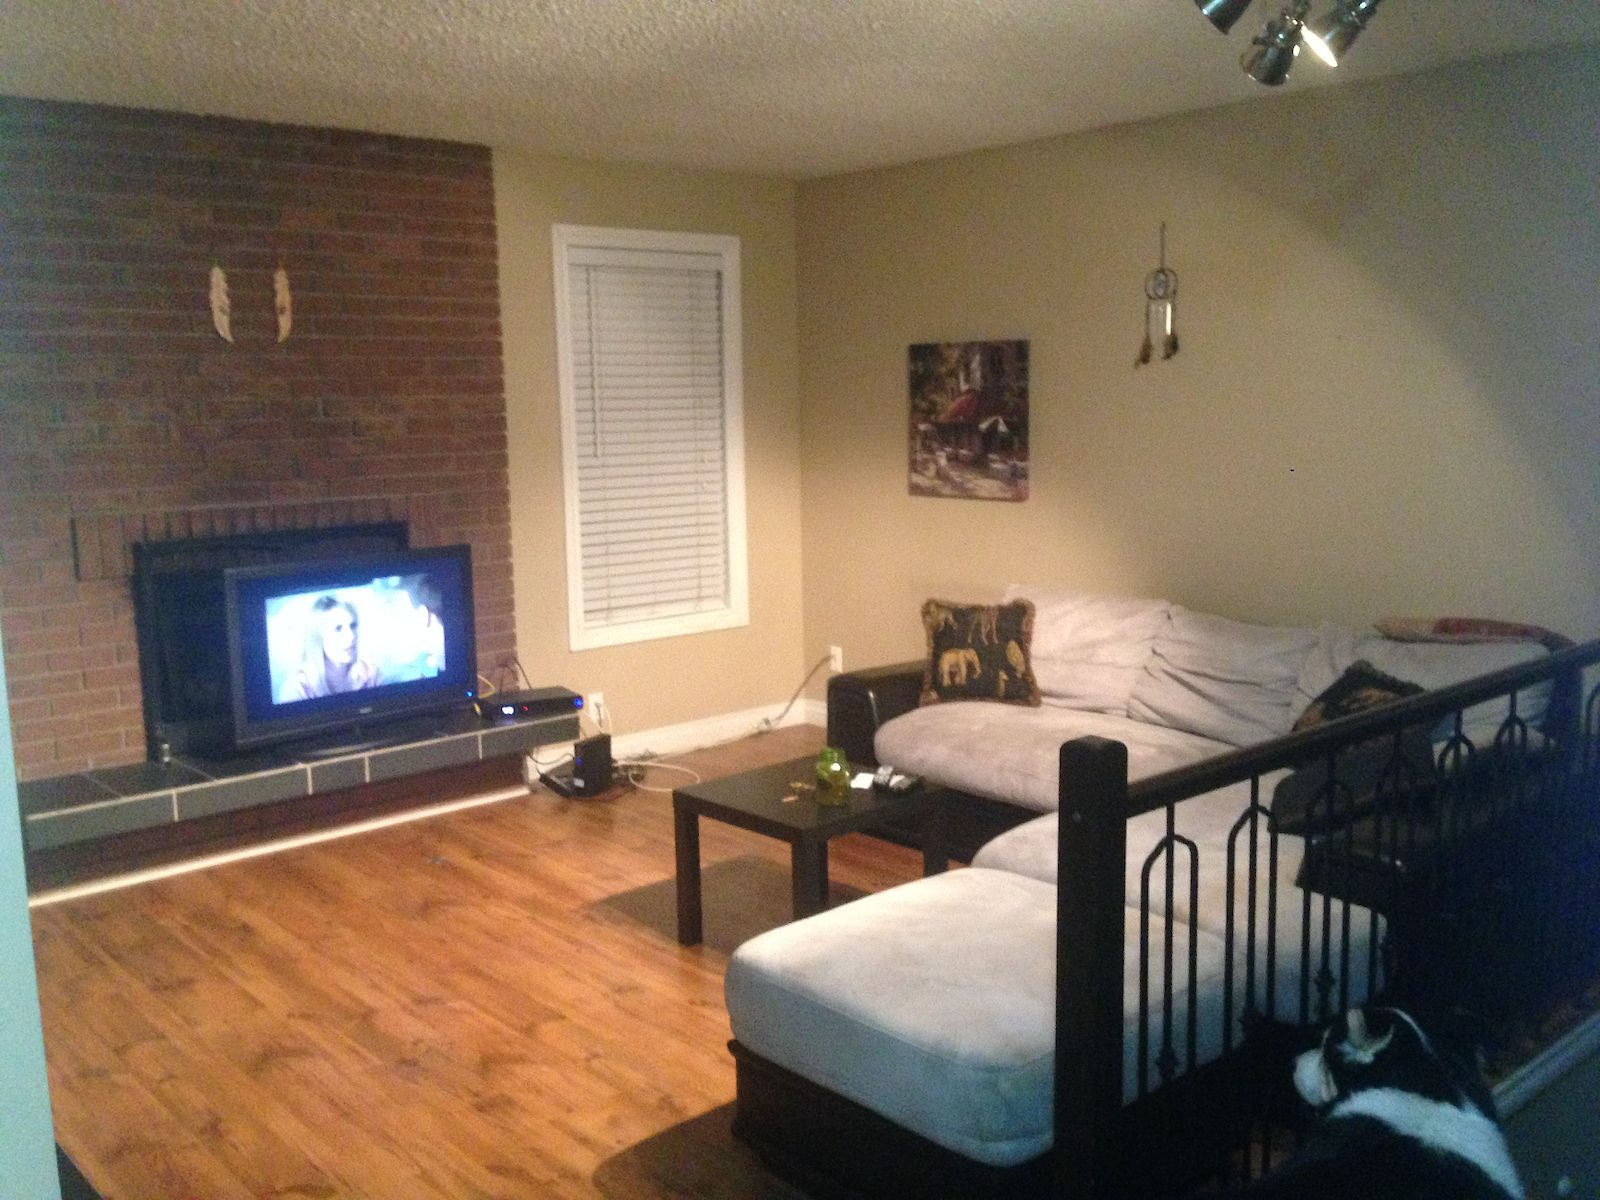 2 Bedroom Basement Suite Utilities Are Included